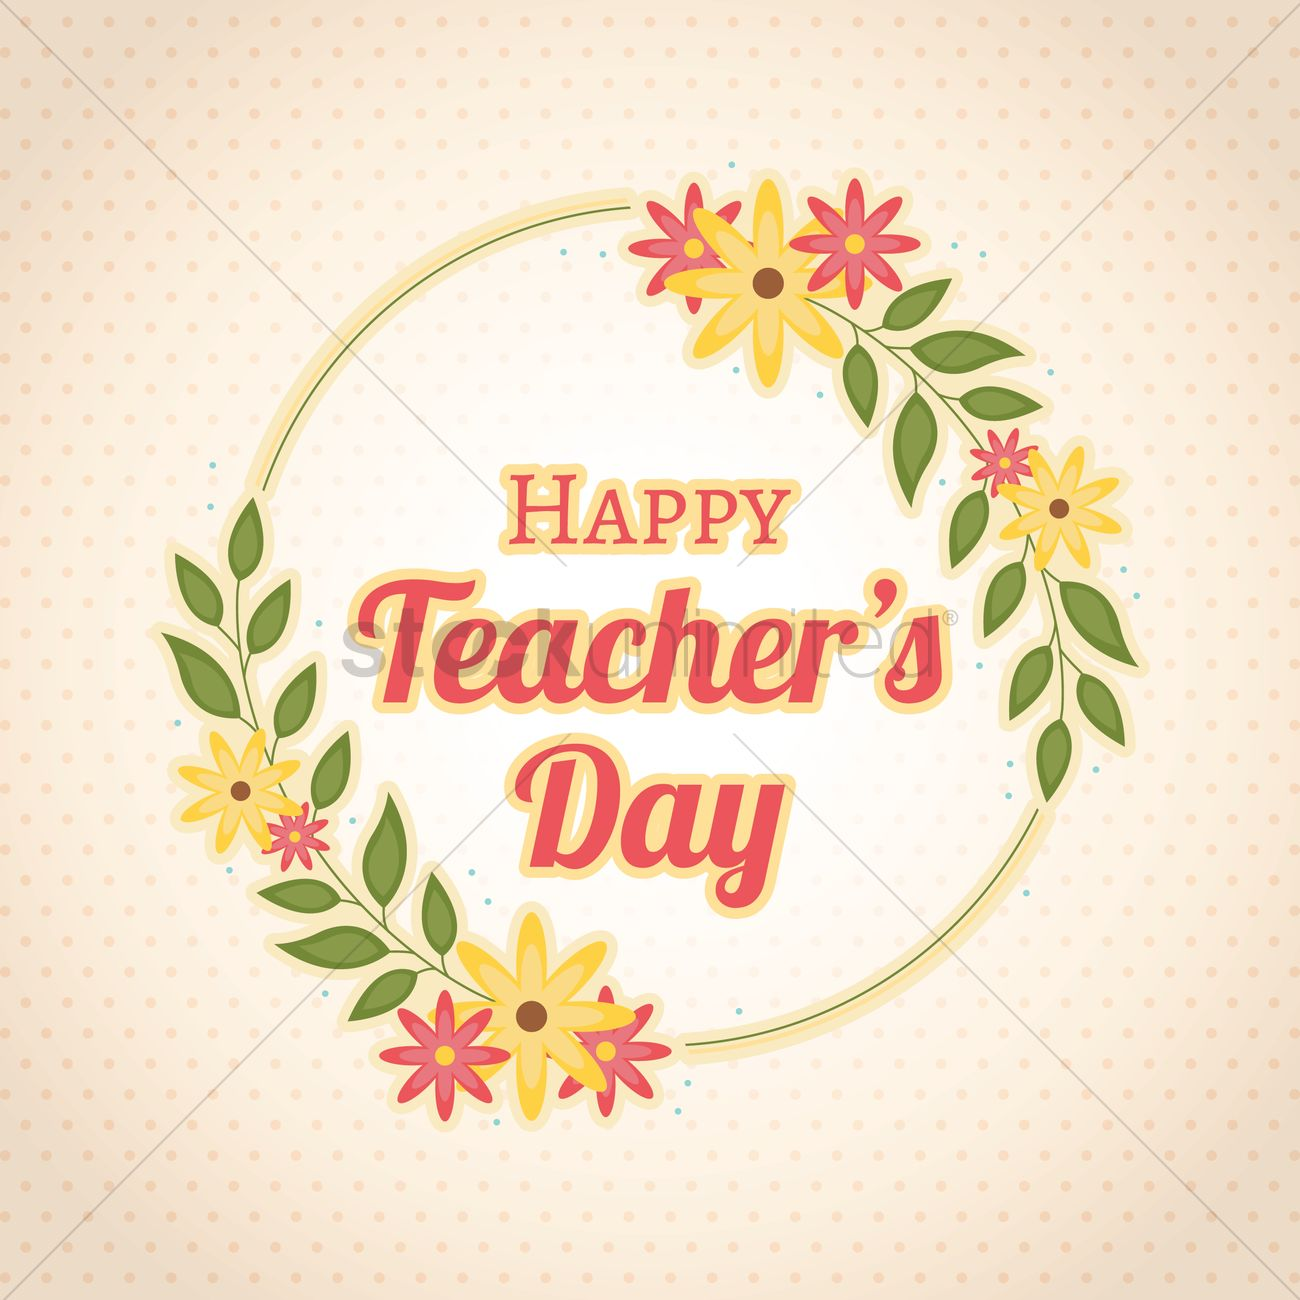 Happy Teachers Day Design Vector Image 1964598 Stockunlimited